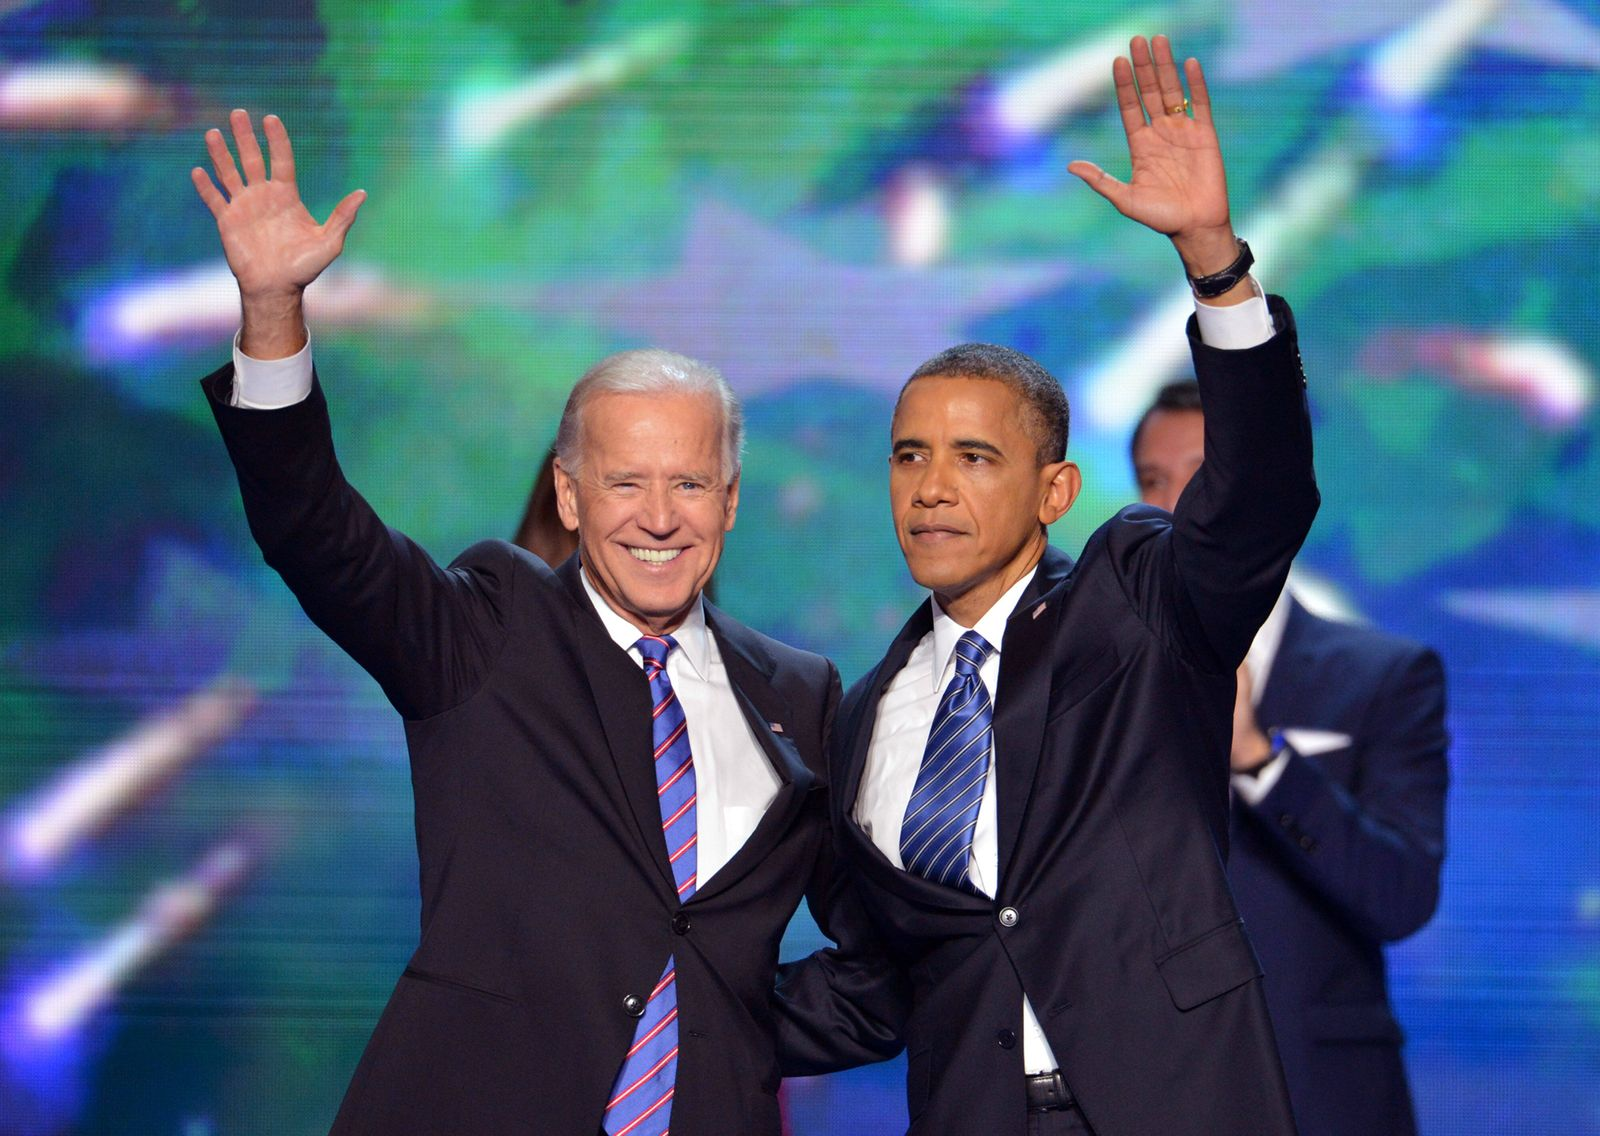 Former President Barack Obama waves and embraces his Vice President Joe Biden in this September 6, 2012 file photo durin